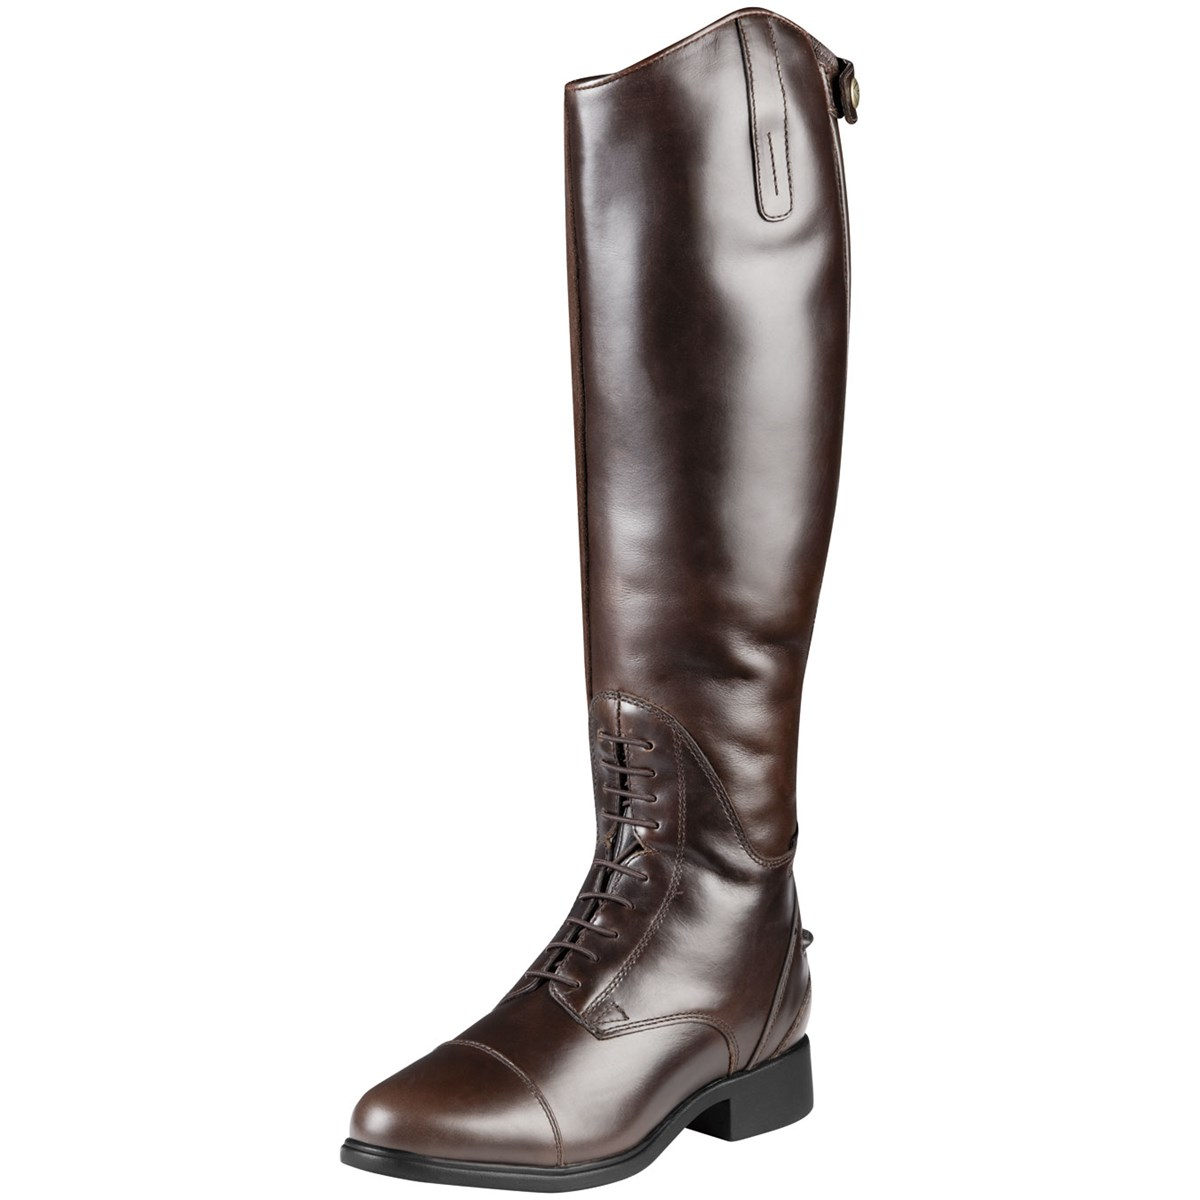 b79b1106a7cf Ariat Bromont Tall H2O Insulated Womens Boots - Waxed Chocolate ...